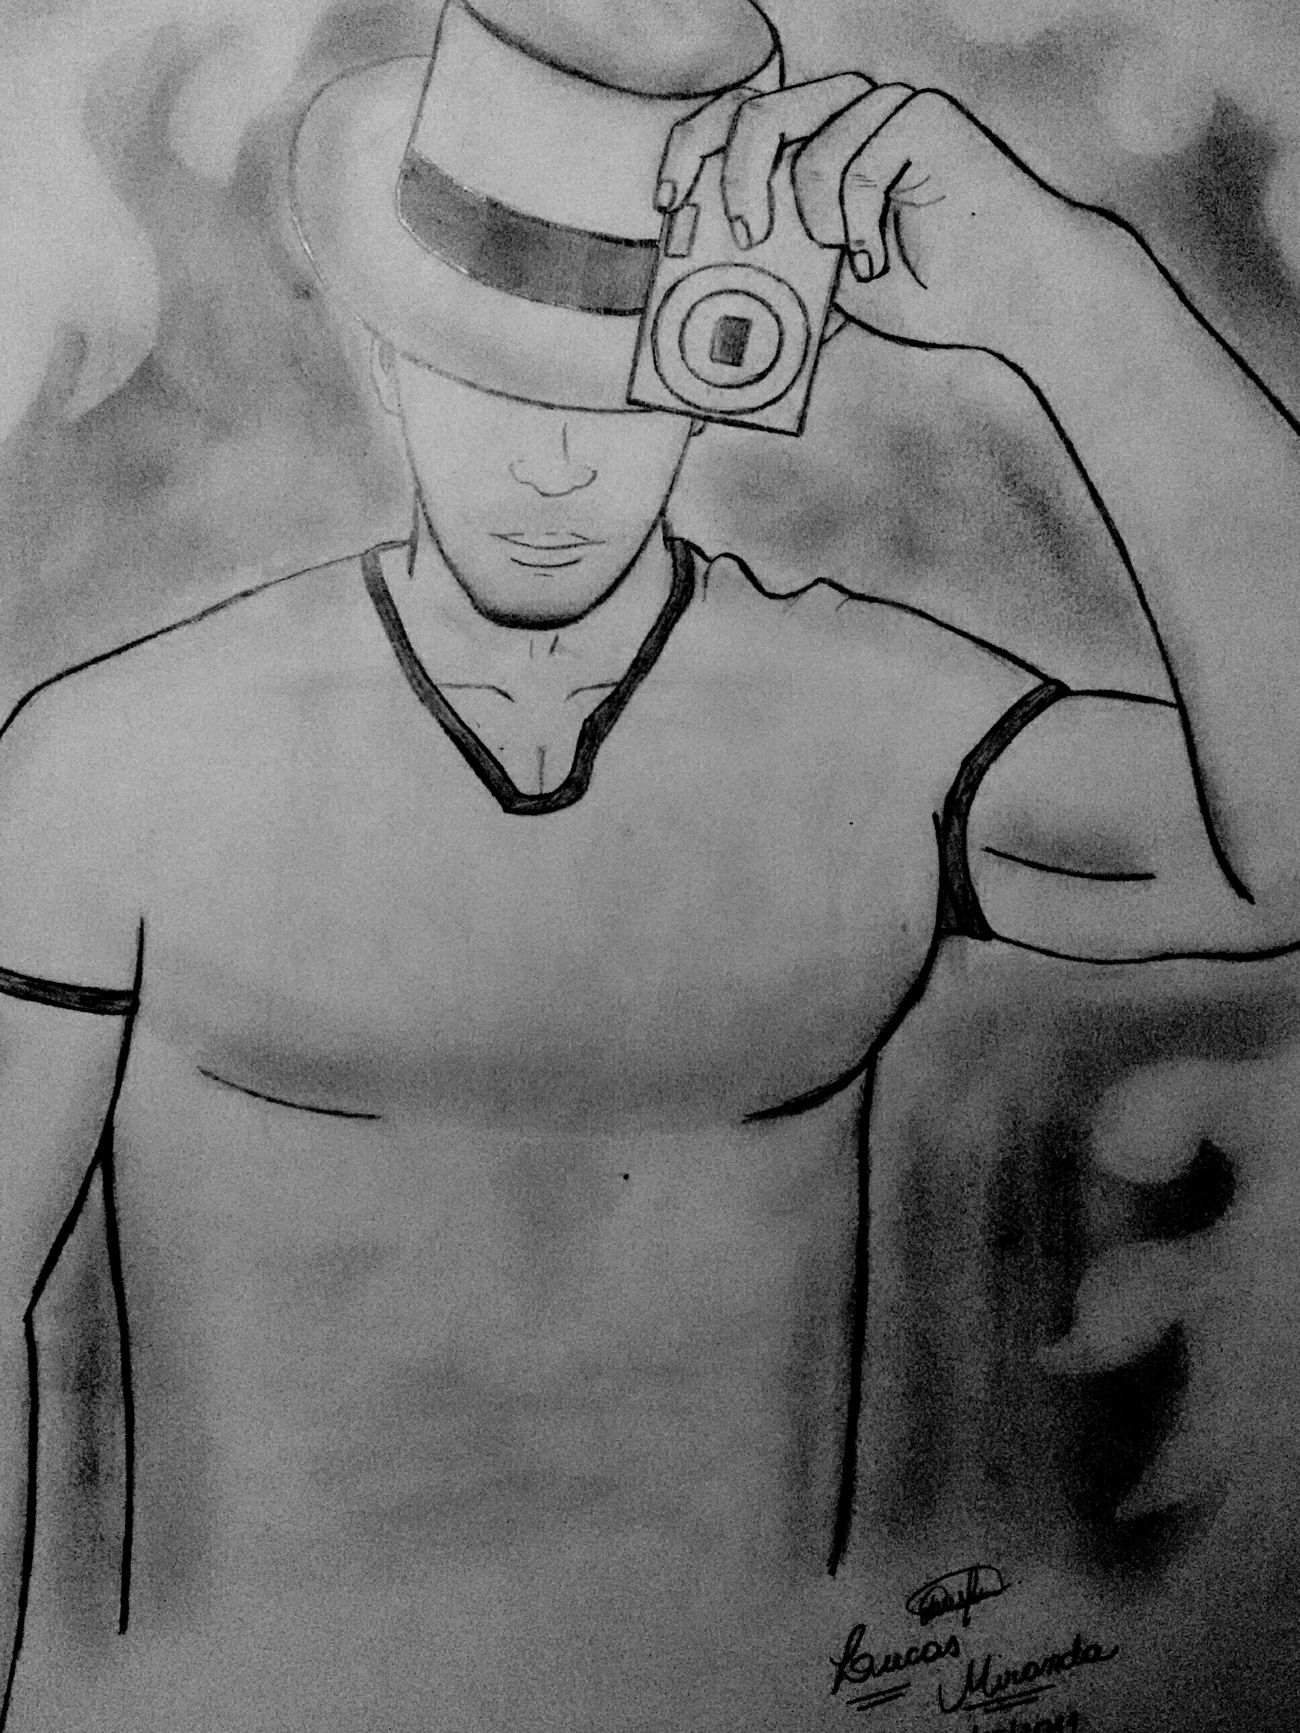 Drawing Graphite Dibujo Art LM_colection Sexy Boy Selfie Artistic Black & White Desenho